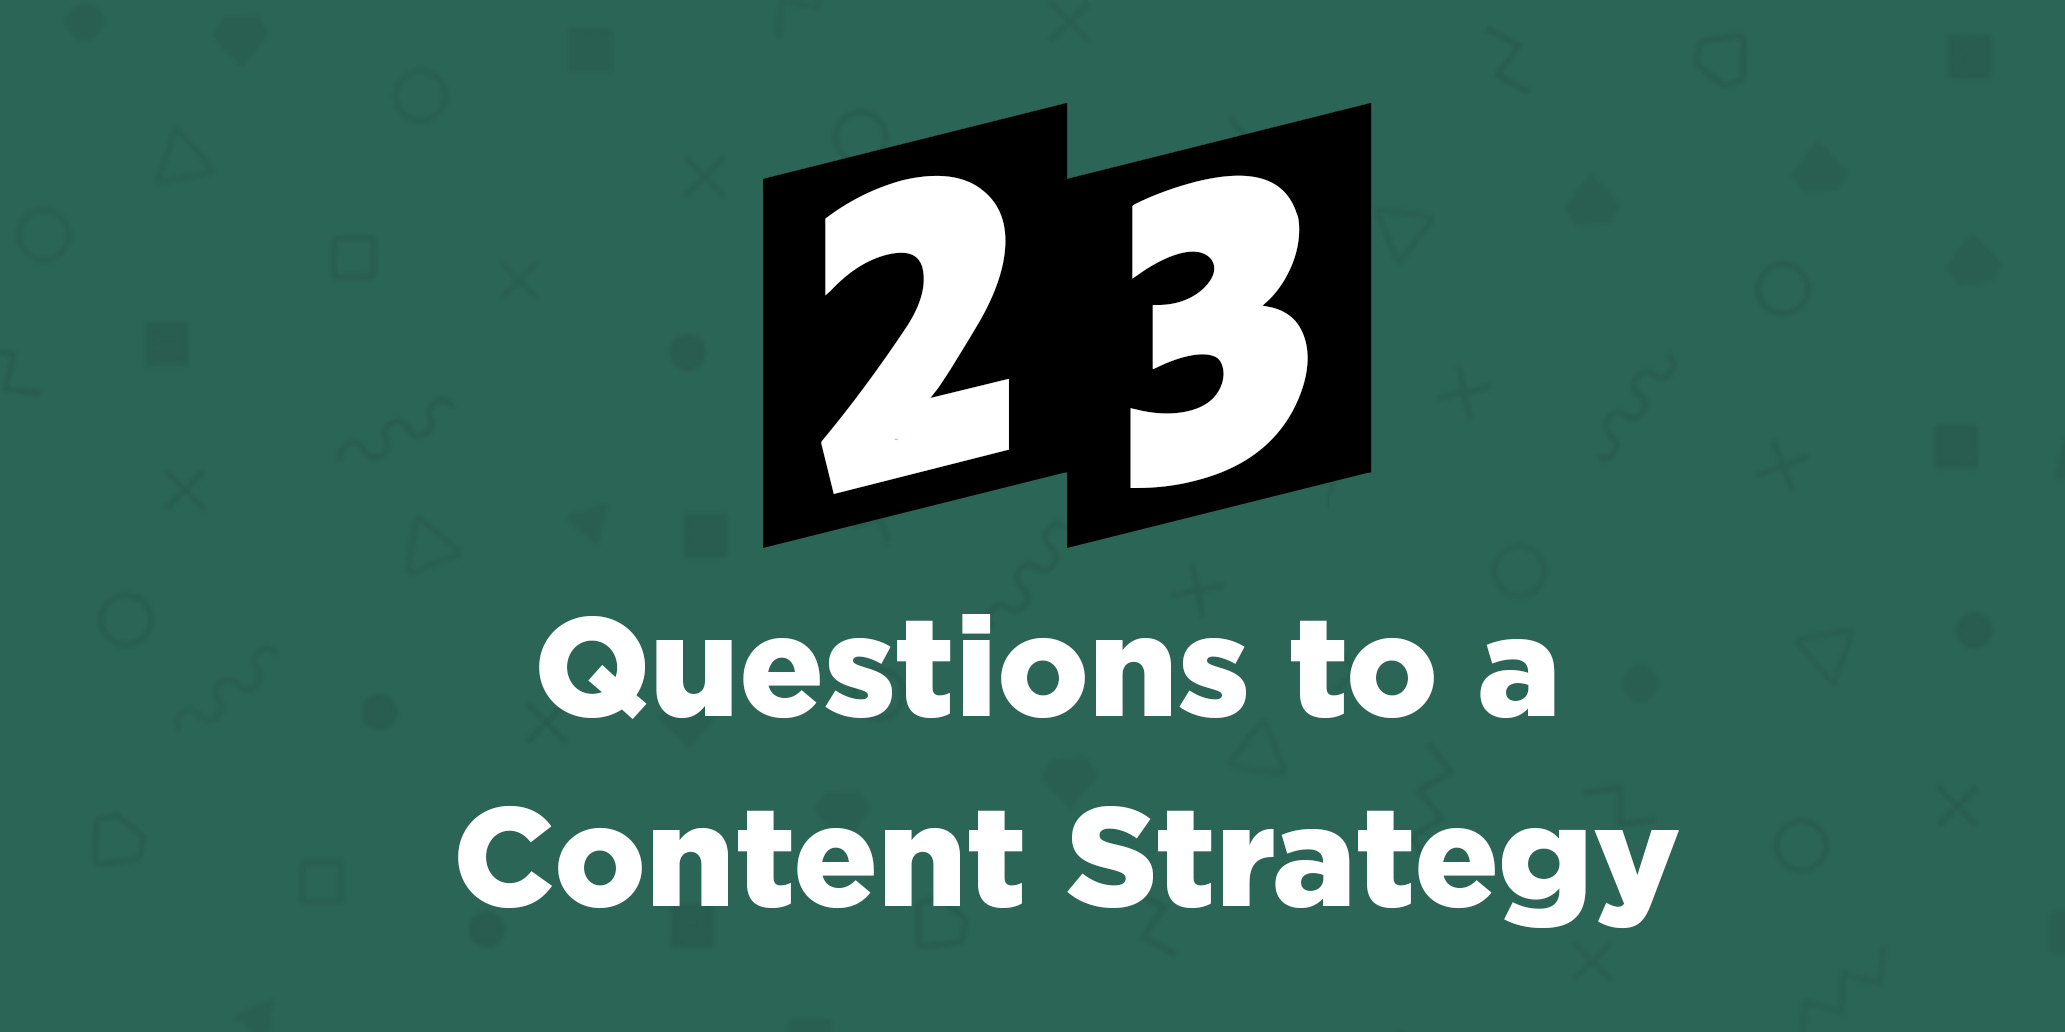 23 Questions to a Content Strategy